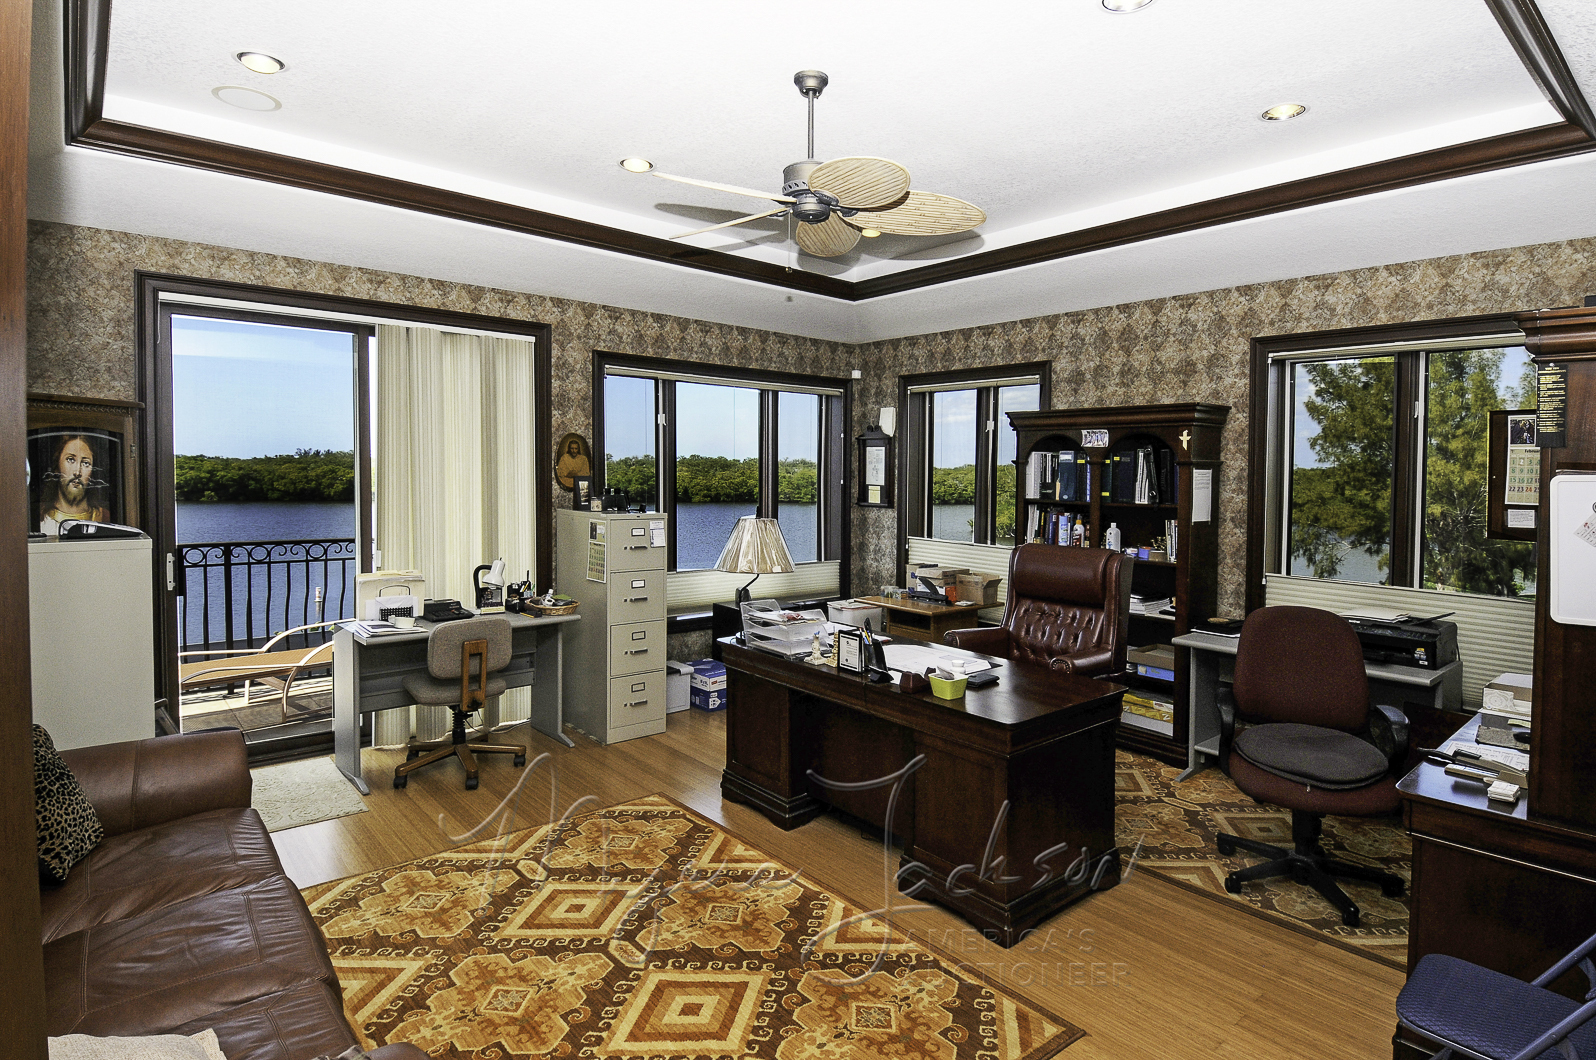 Luxury Home Office #luxehomeauction by myers jackson broker